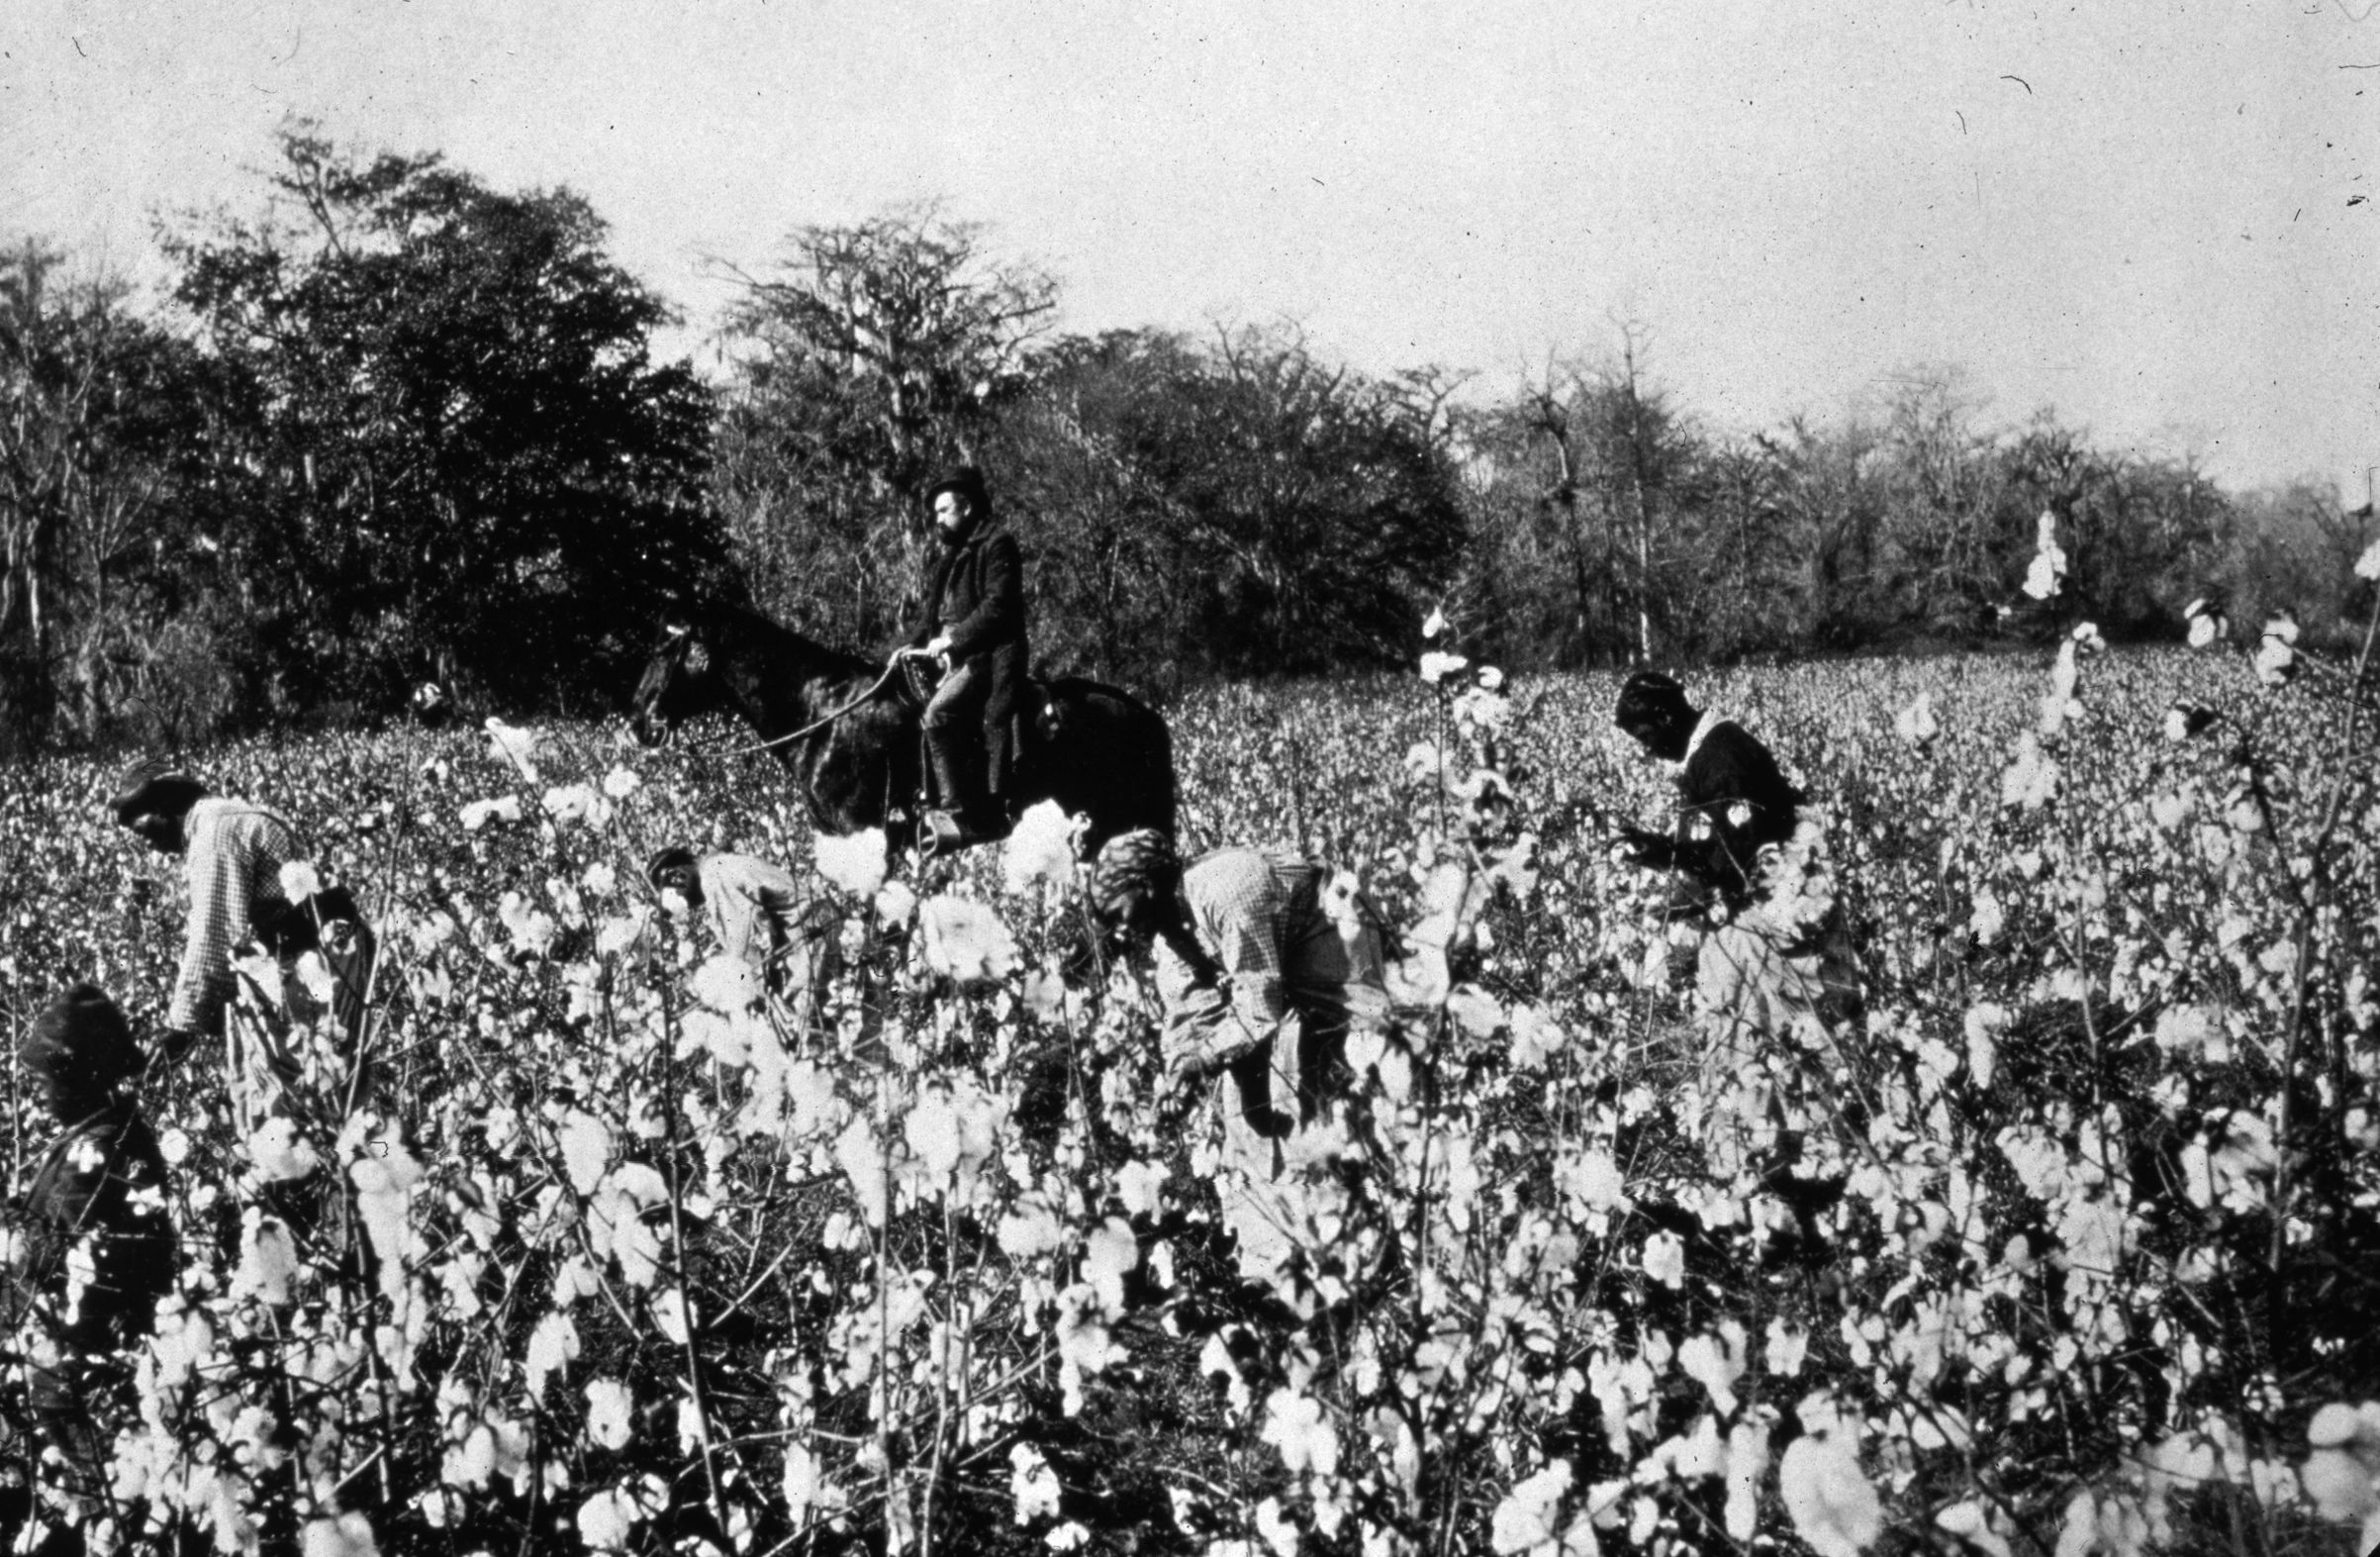 circa 1850: An overseer riding past people picking cotton in a field in the southern states of America.